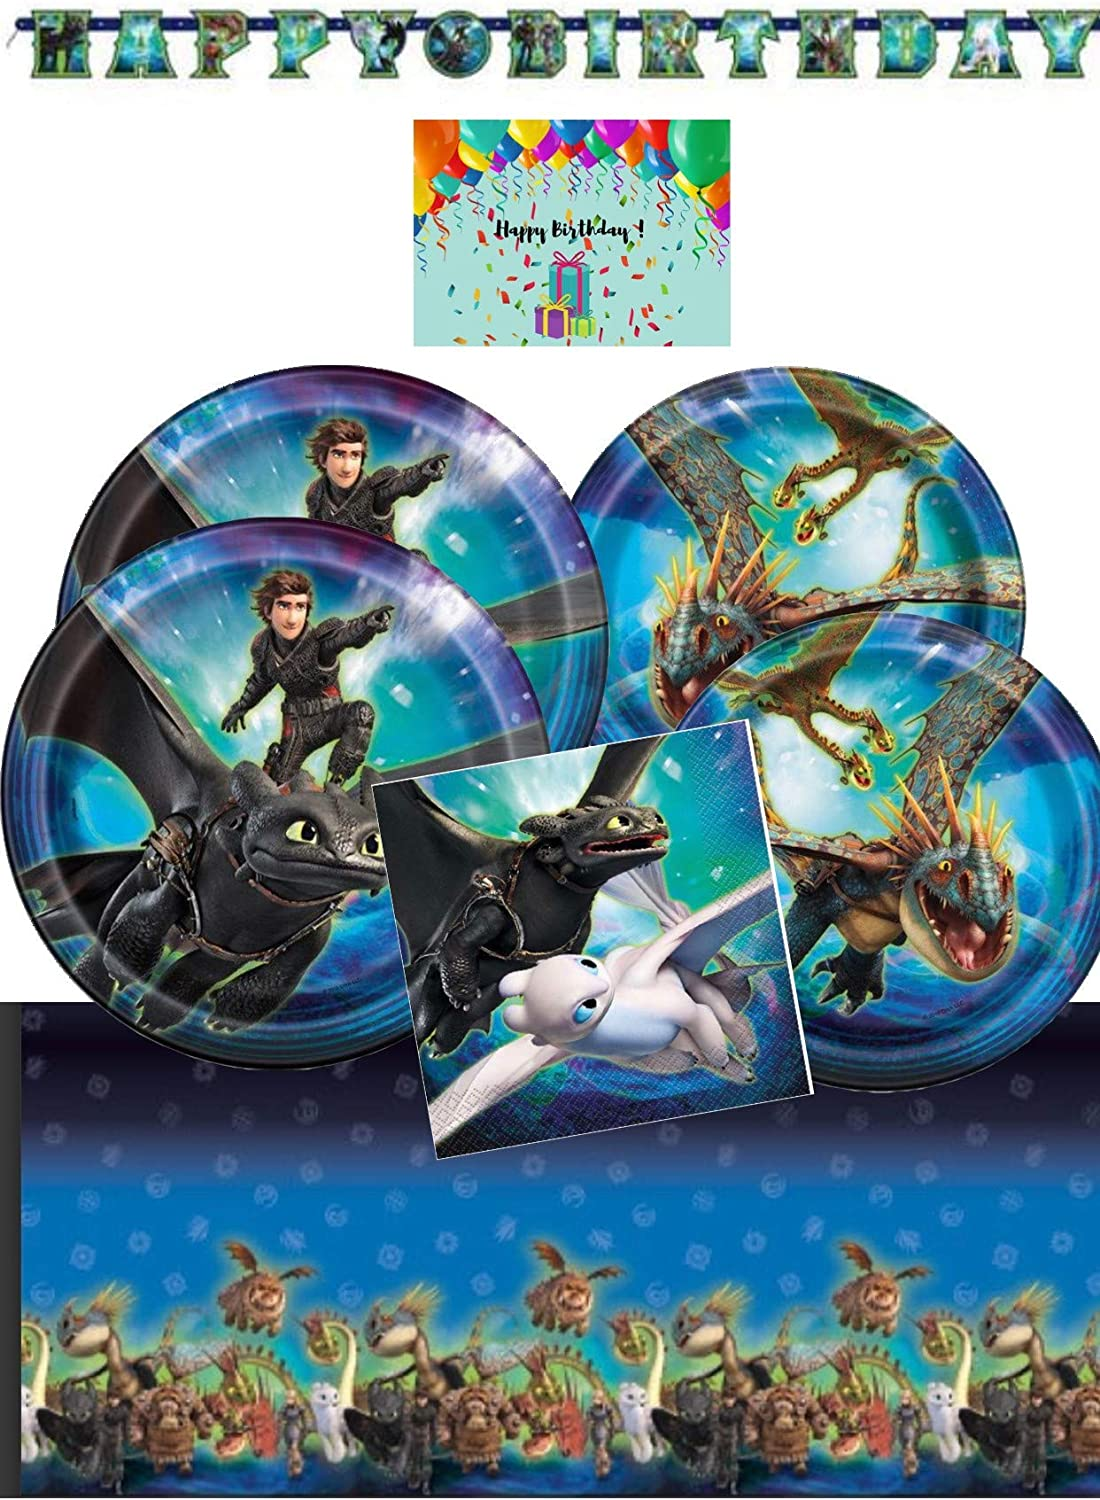 How To Train Your Dragon Deluxe Party Supplies Pack for 16 - Tablecover, Lunch Plates, Dessert Plates, Napkins, Birthday Banner Bundles with Birthday Card by JPMD Party House